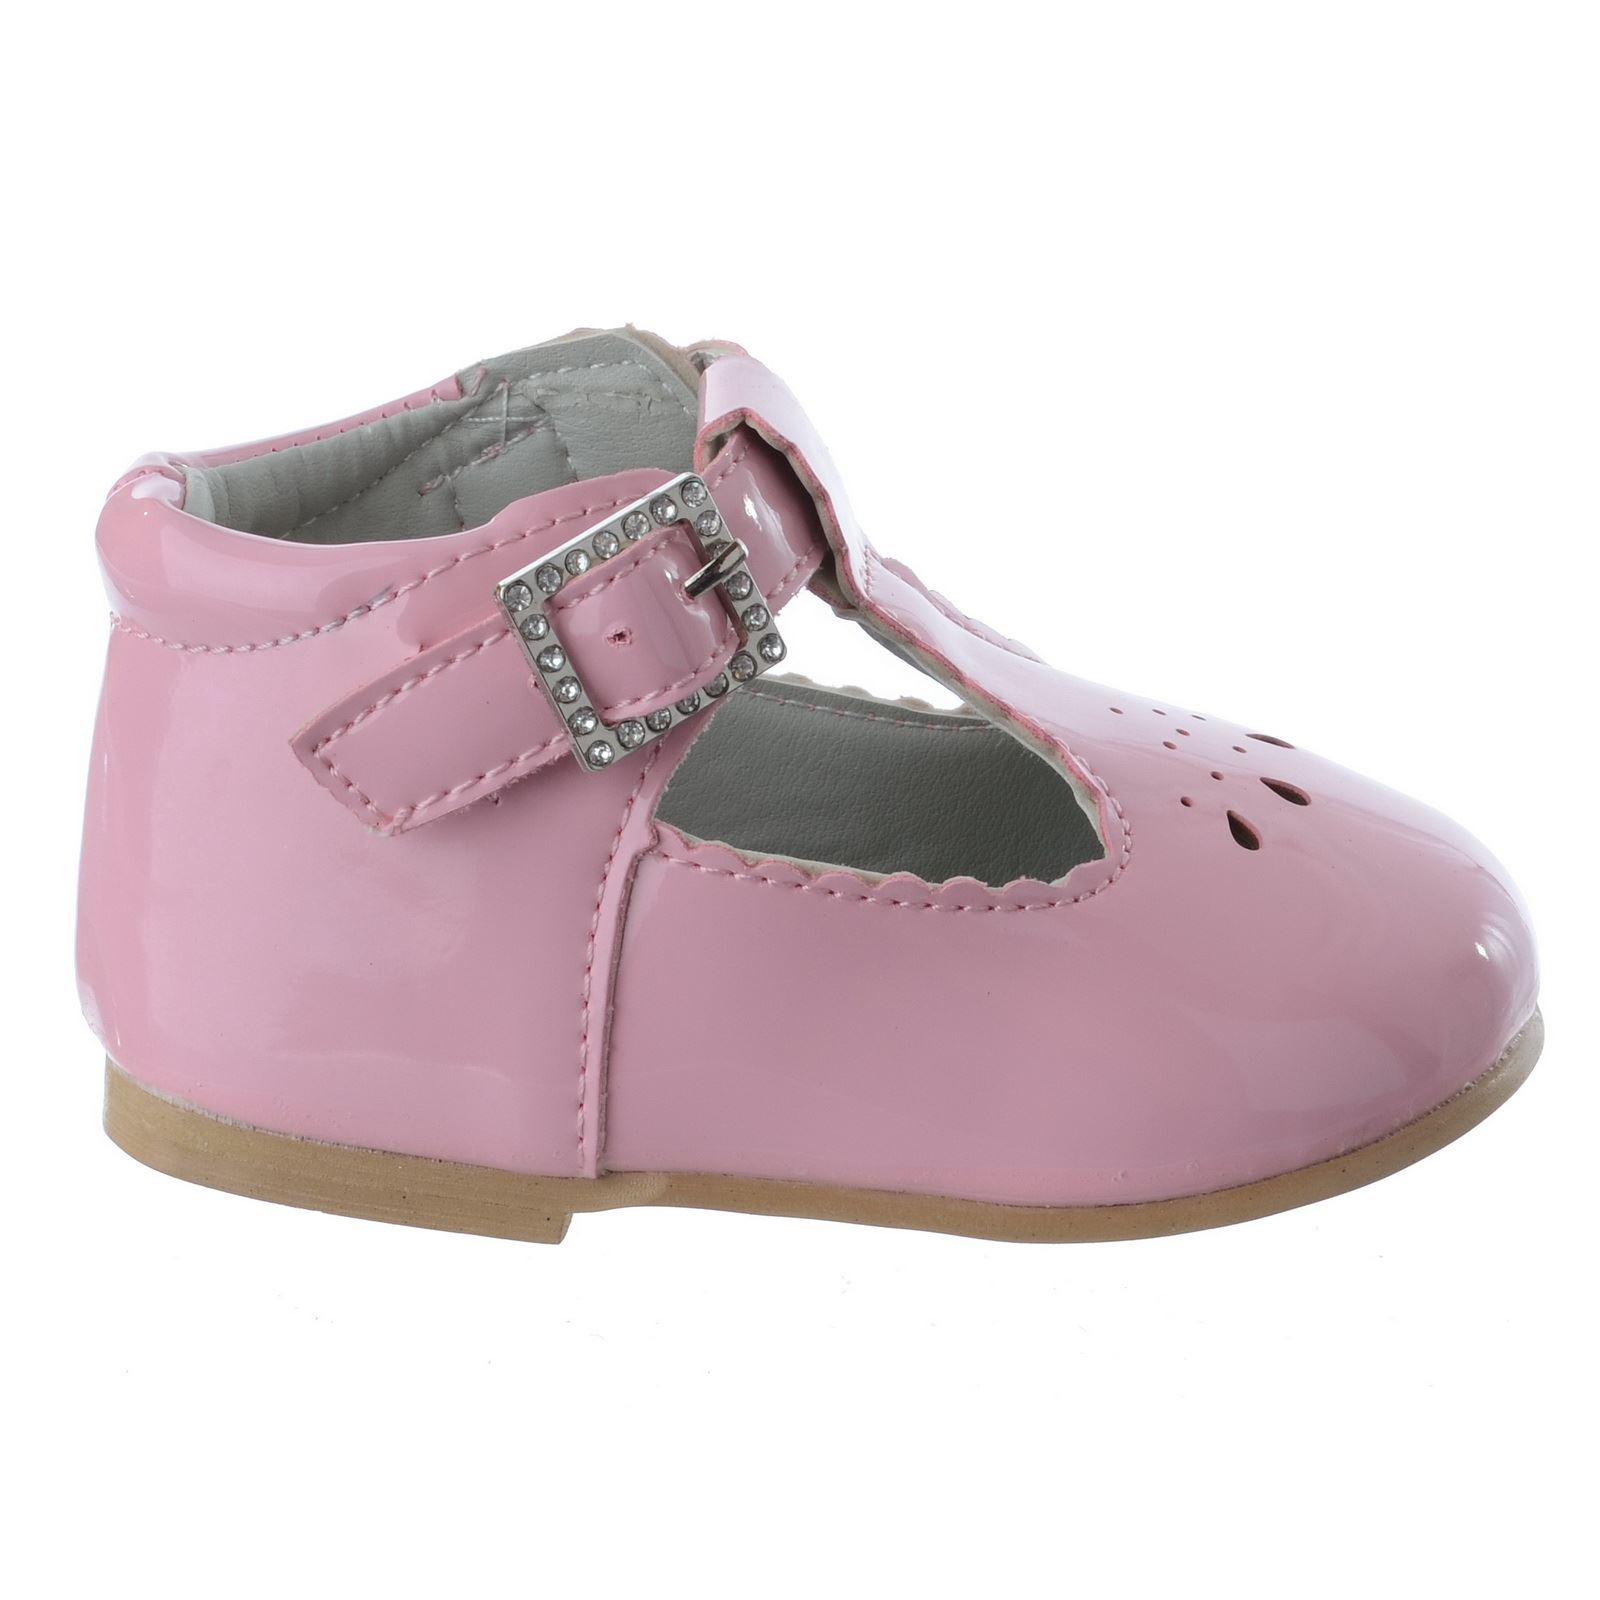 Leather Bottom Shoes For Babies